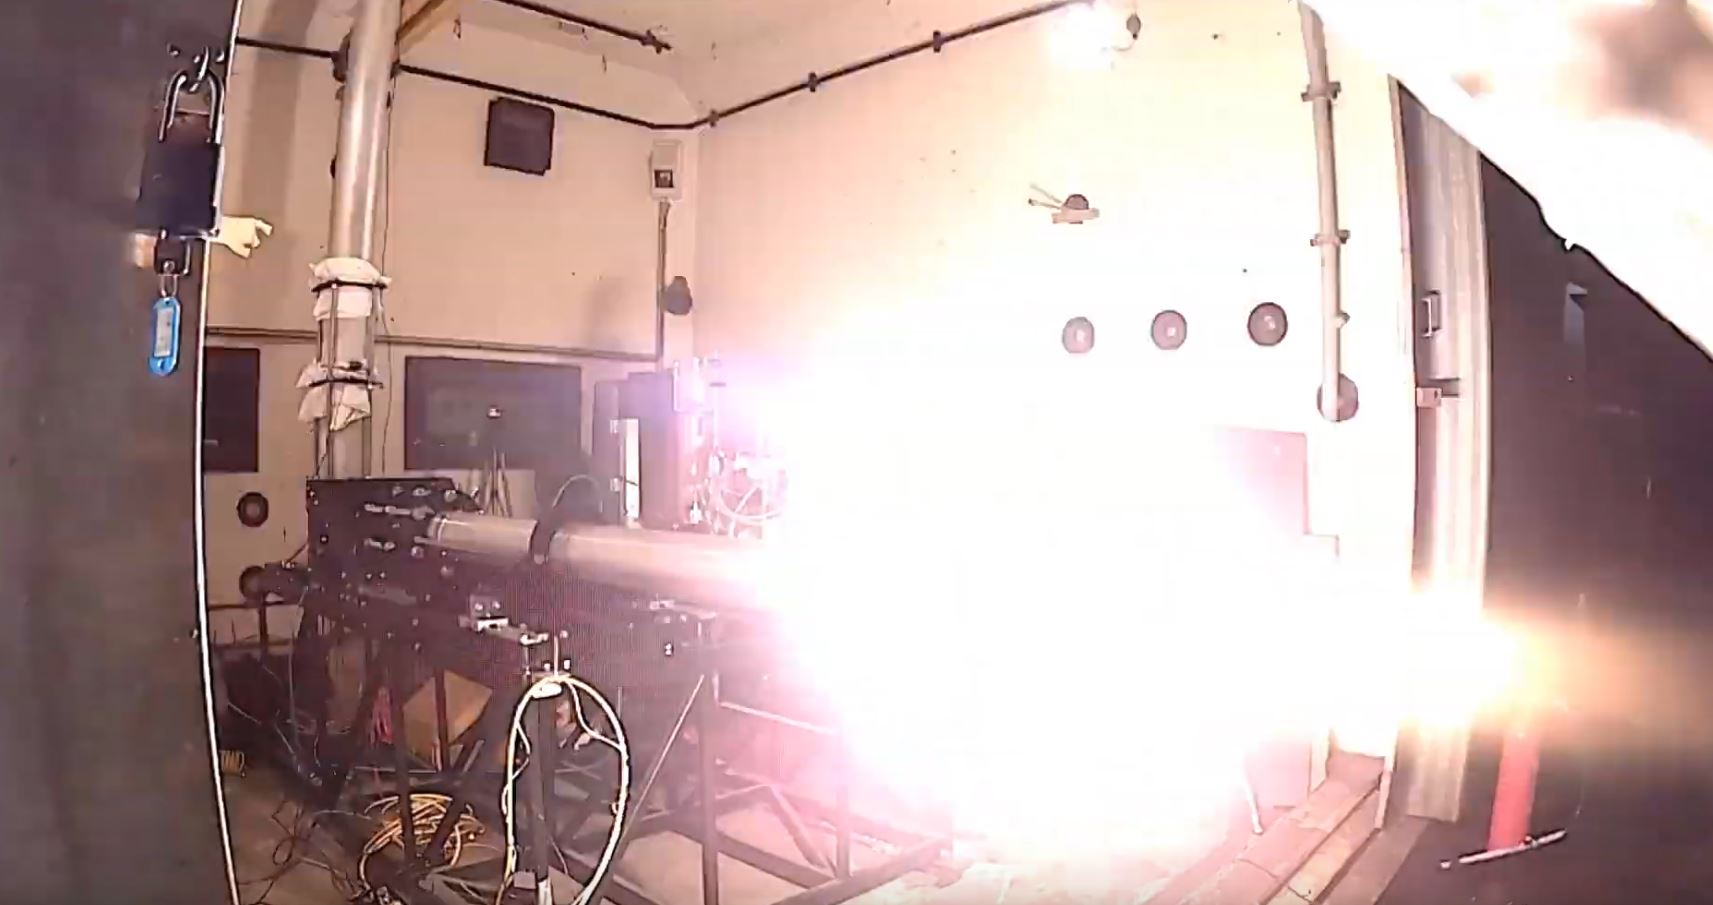 Pulsar hybrid rocket at the moment of ignition